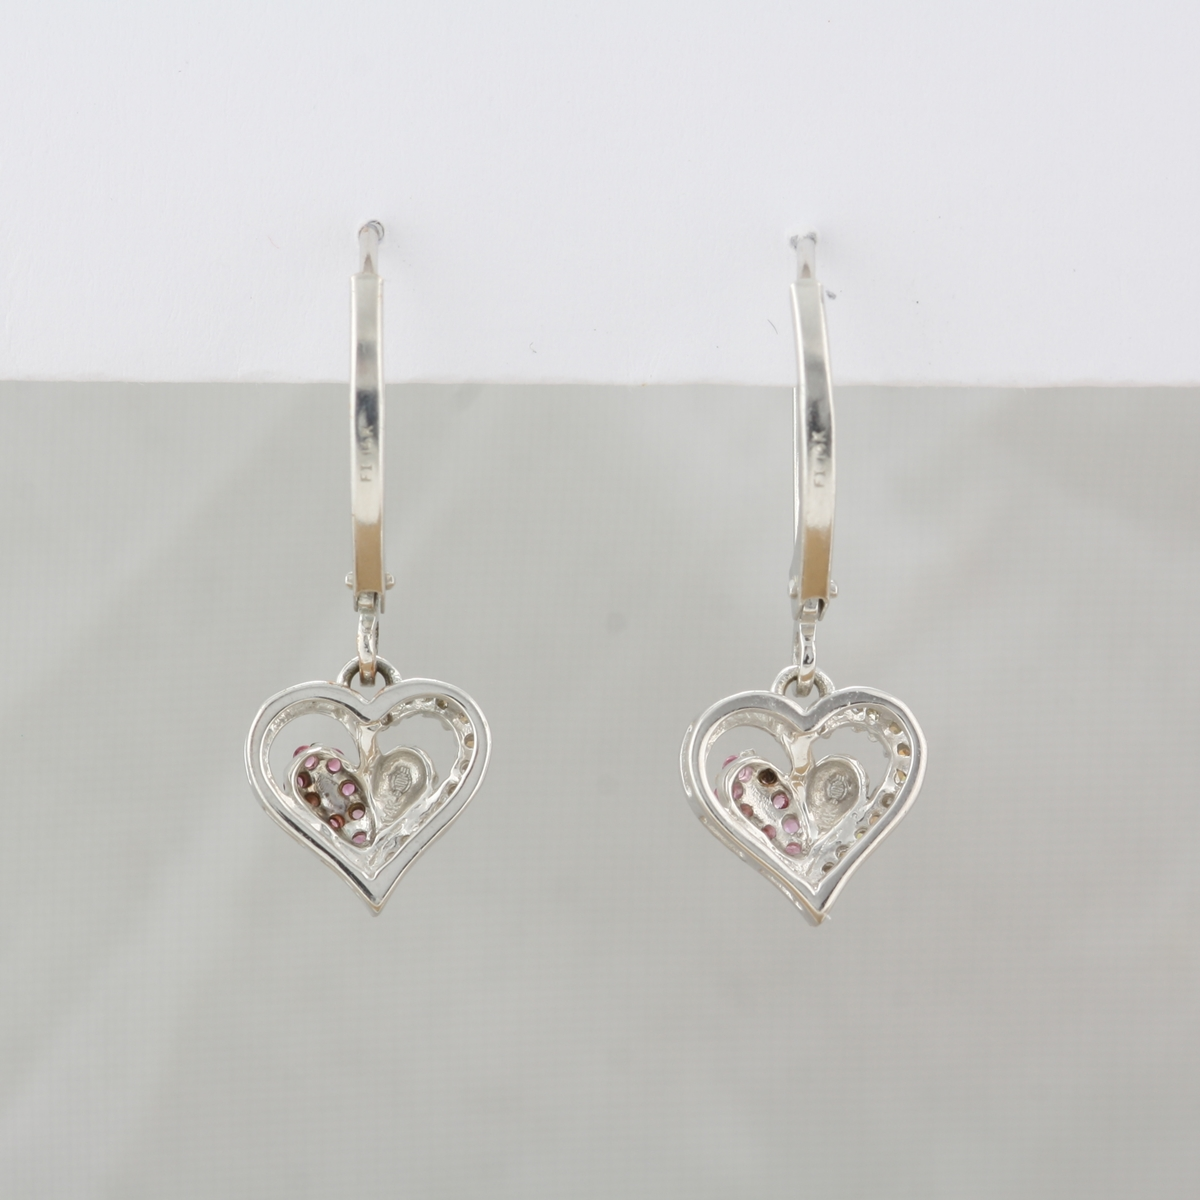 Preowned 10 Karat White Gold Dangle Pink Sapphire & Diamond Heart Earrings